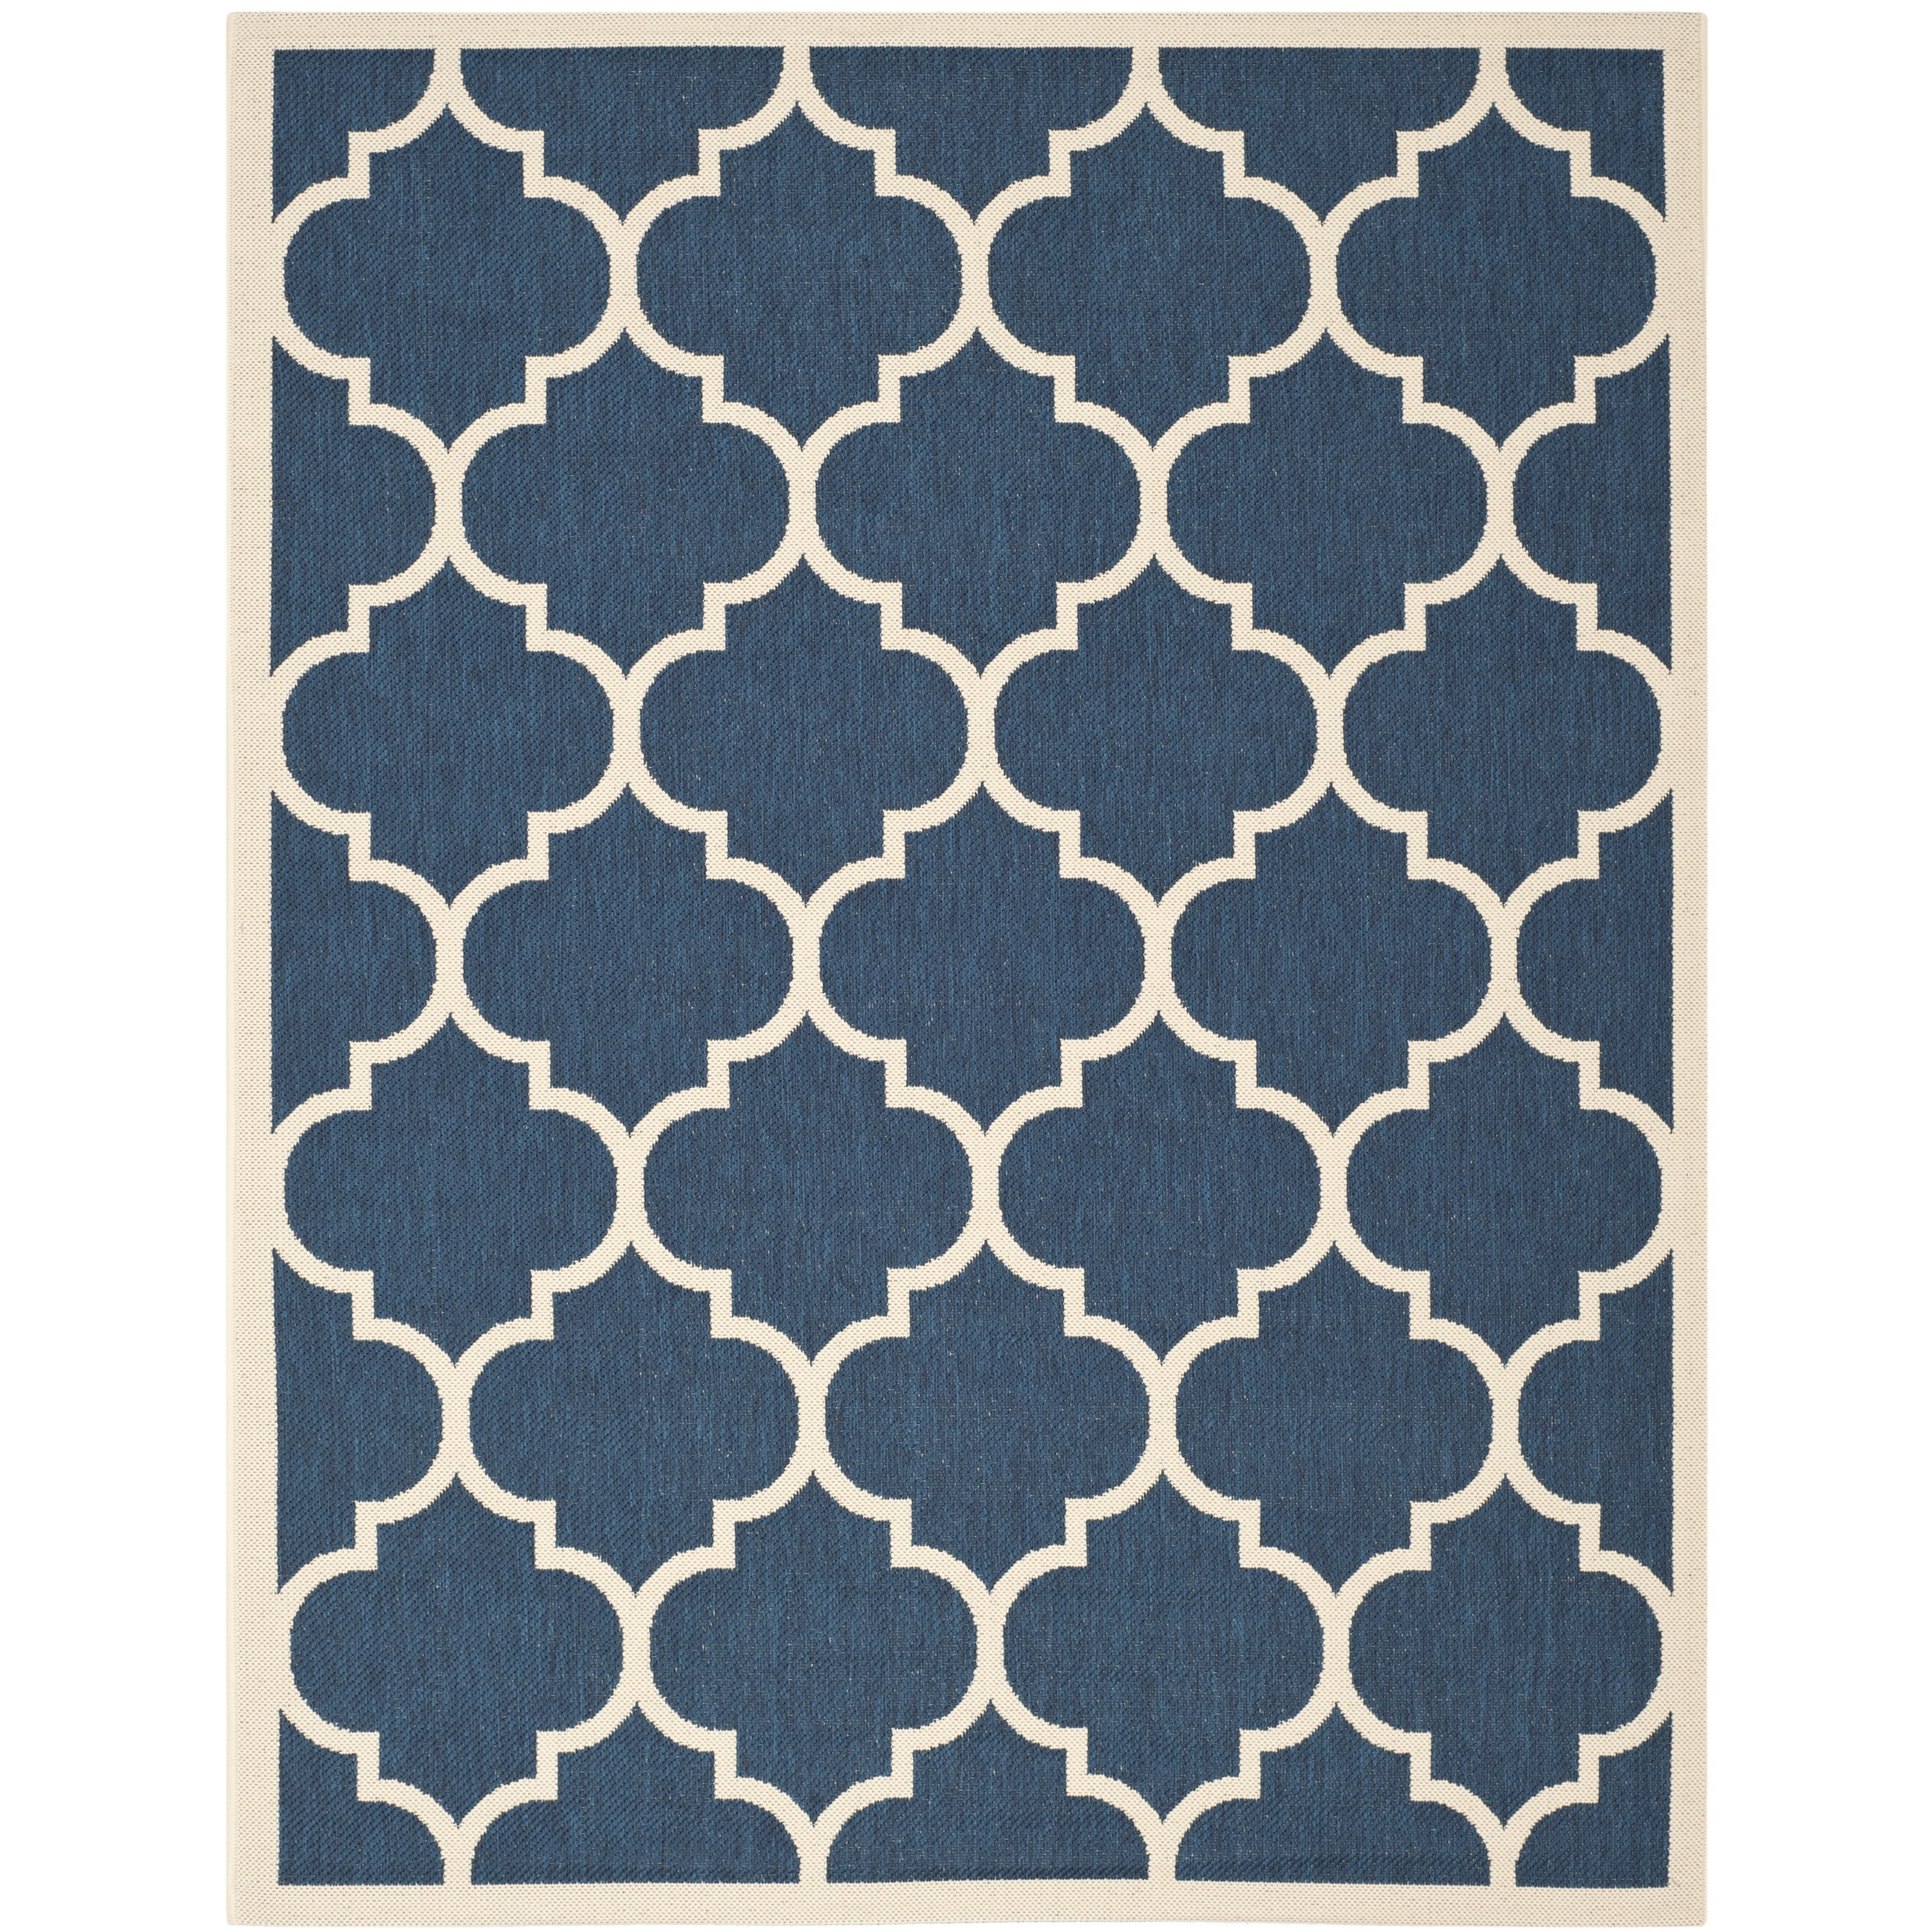 Navy Outdoor Rug 8x10 Uniquely Modern Rugs